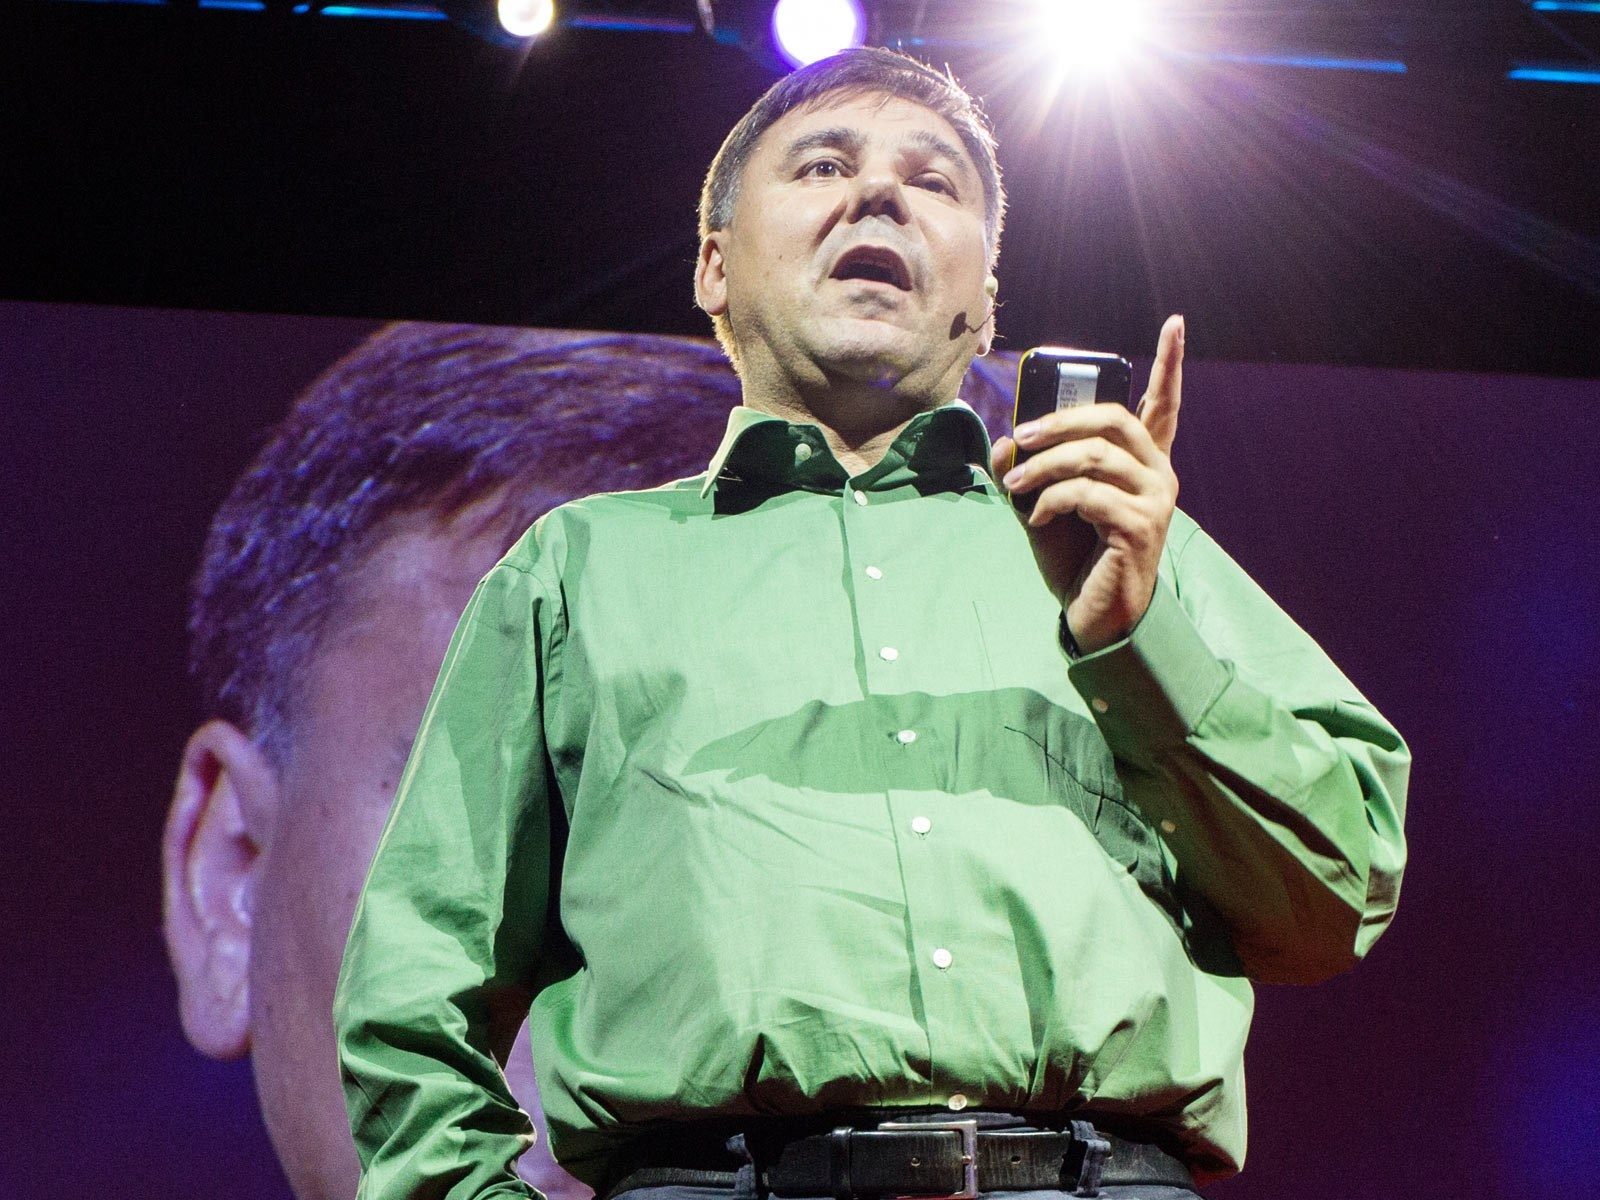 Ivan Krastev: Can democracy exist without trust? | Talk Video | TED.com